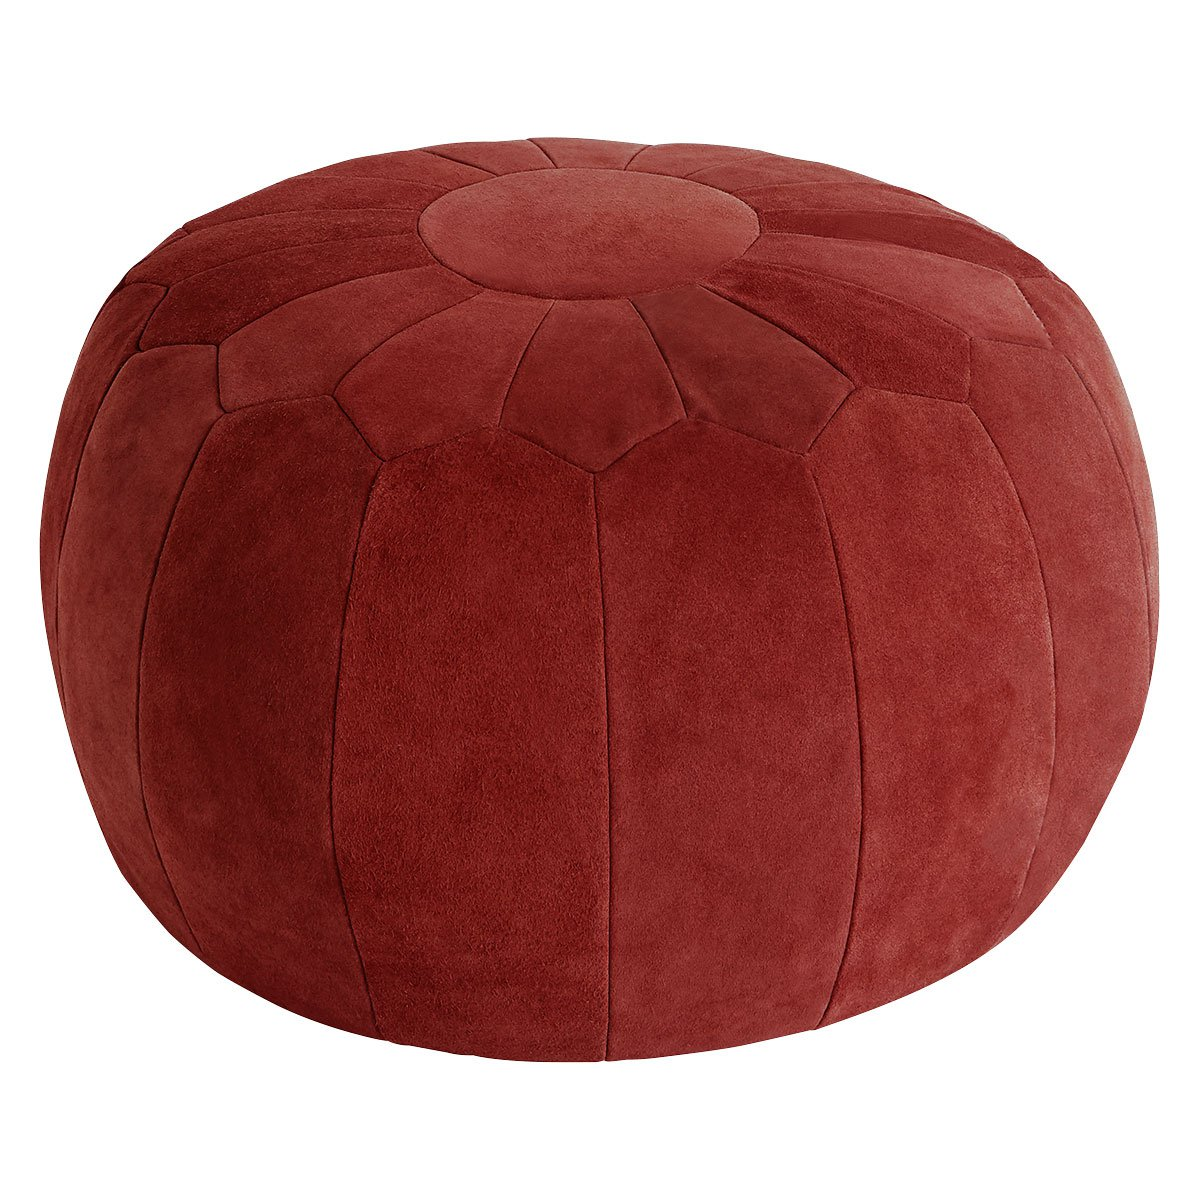 image-Tux Red Suede Round Panelled Pouf, Red